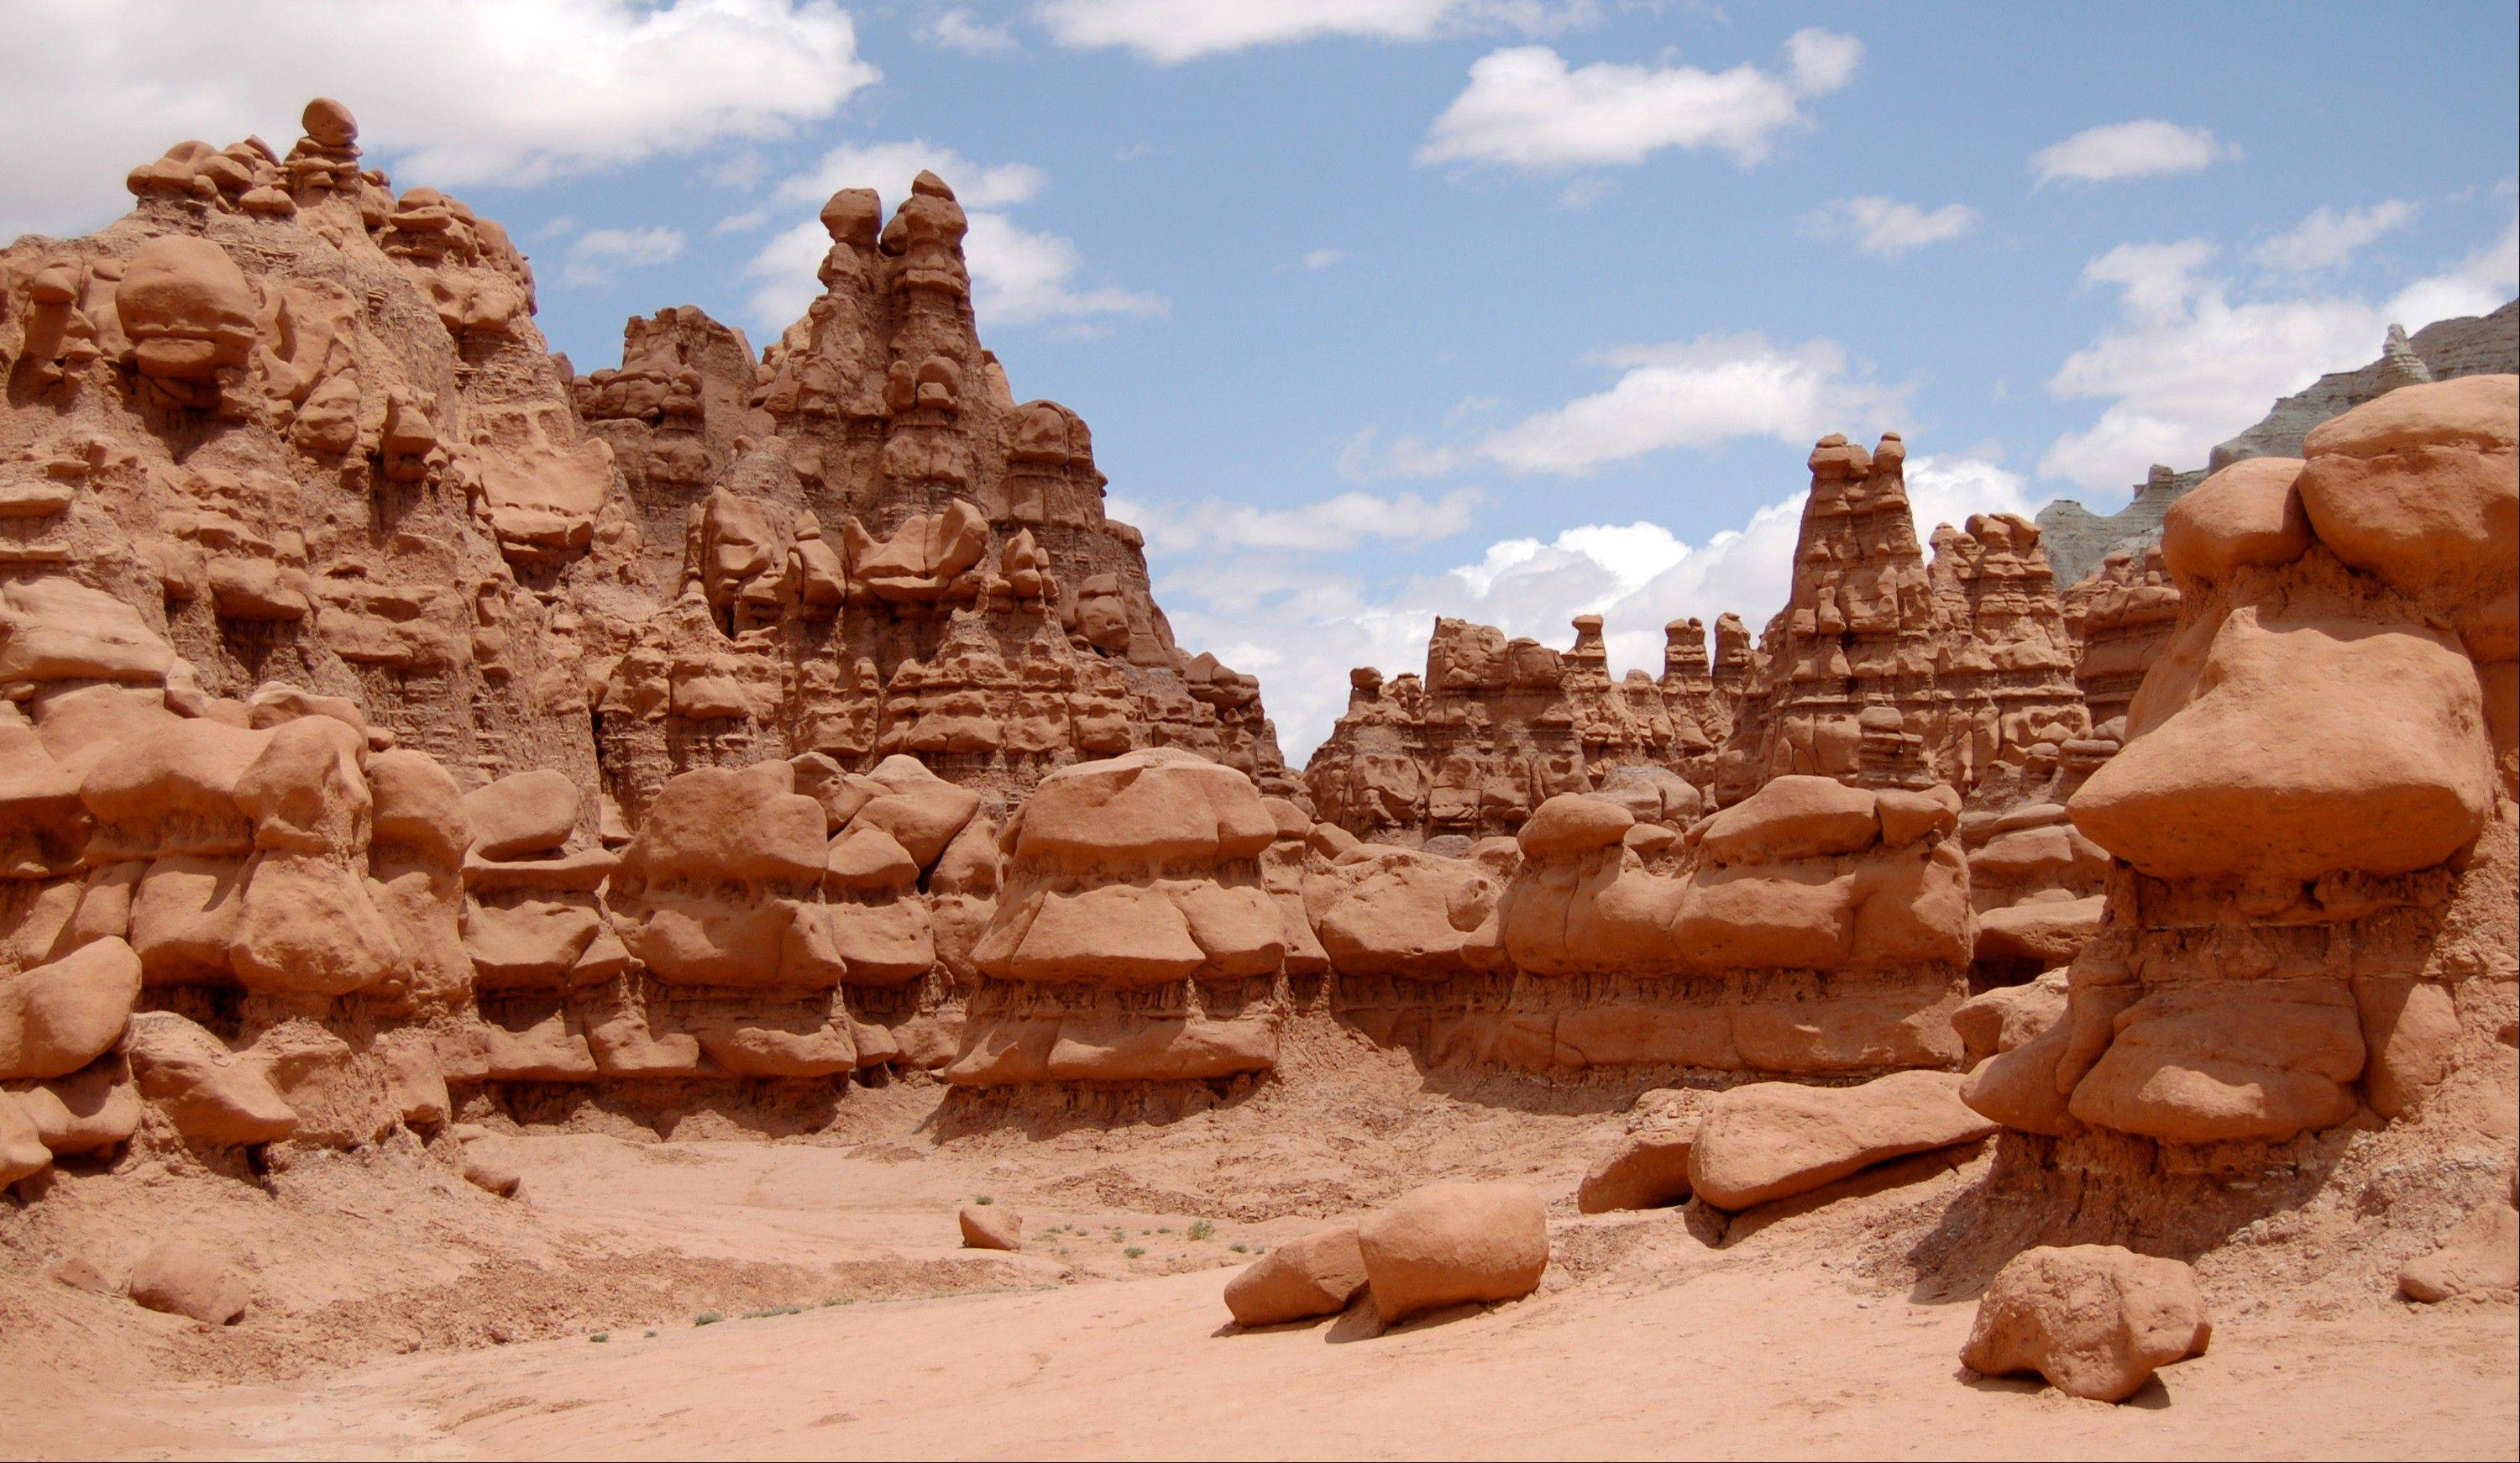 Authorities say three men could face felony charges after purposely knocking over an ancient Utah desert rock formation and posting a video of the incident online. The park is dotted with thousands of the eerie, mushroom shaped sandstone formations.